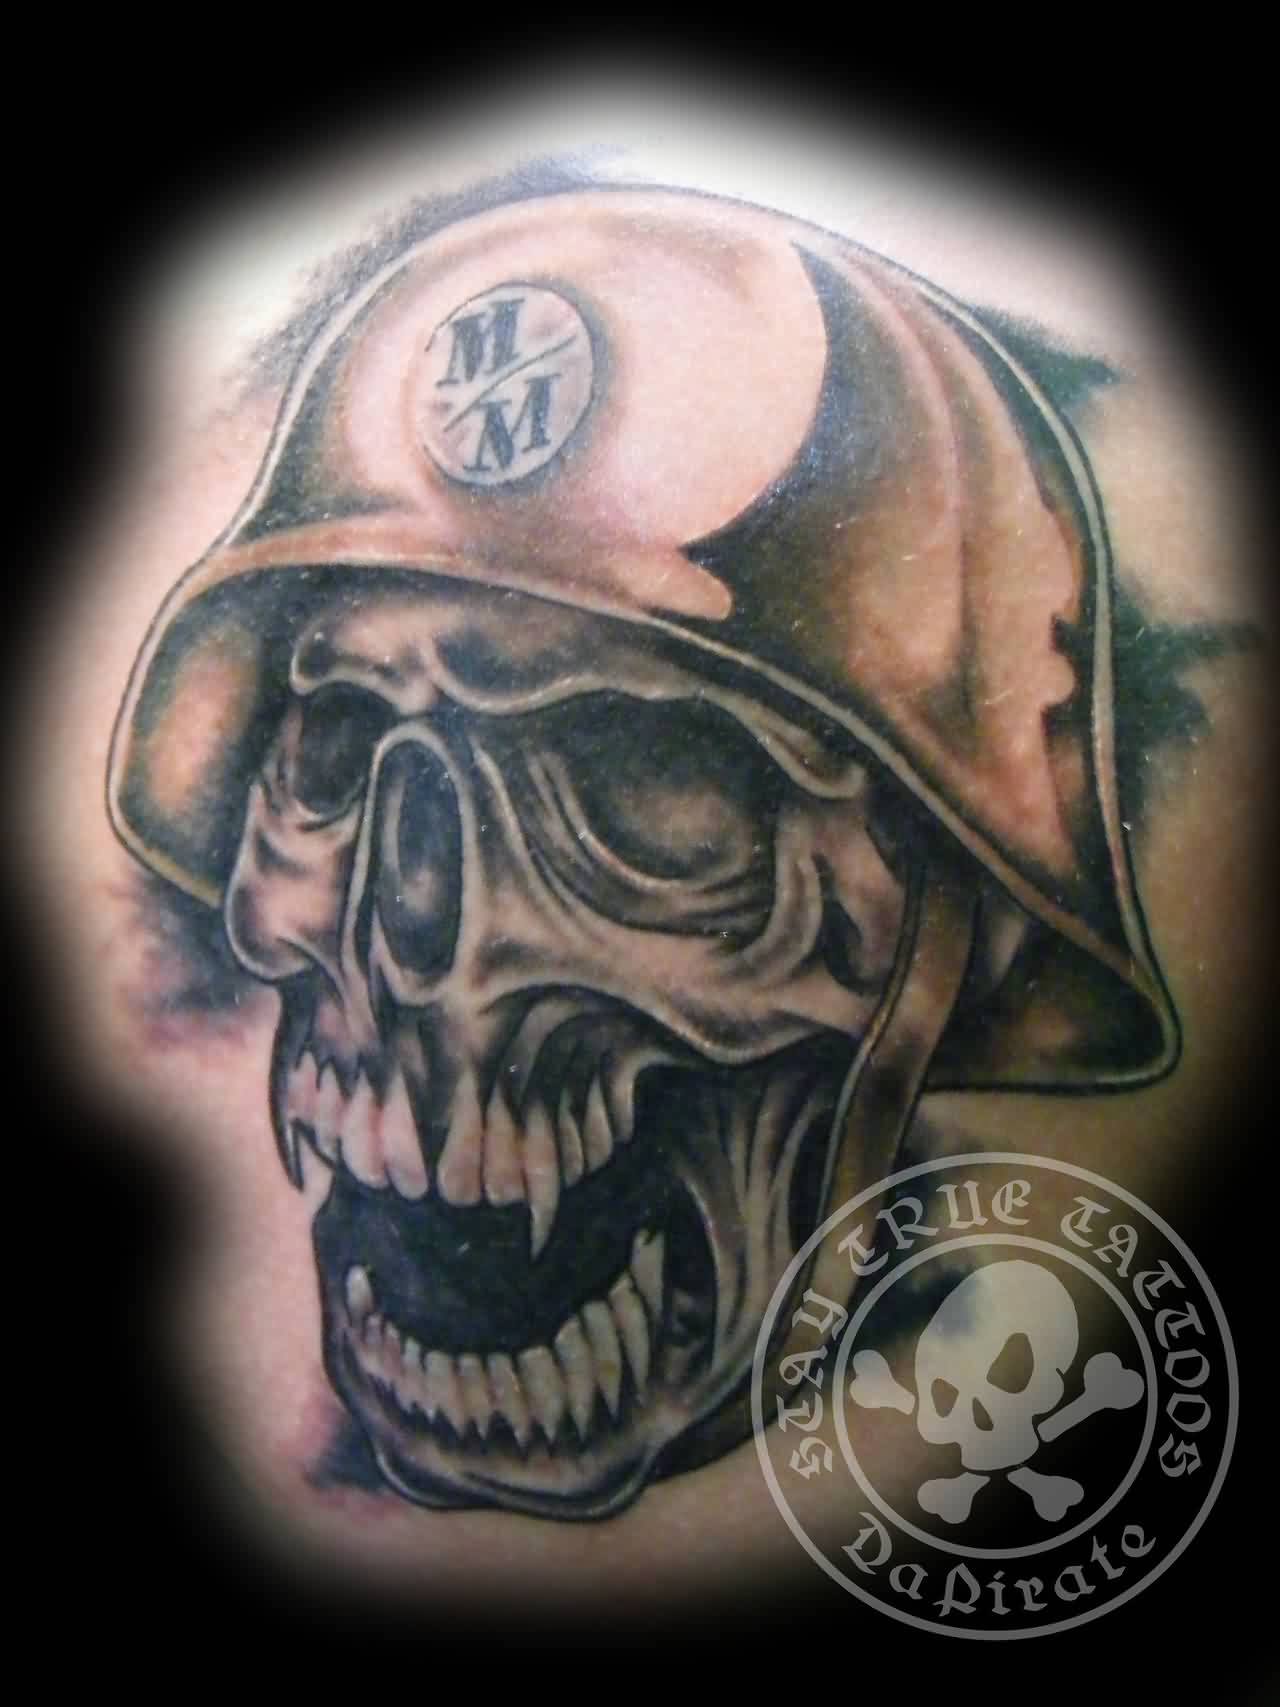 Skull And Helmet Tattoo Image